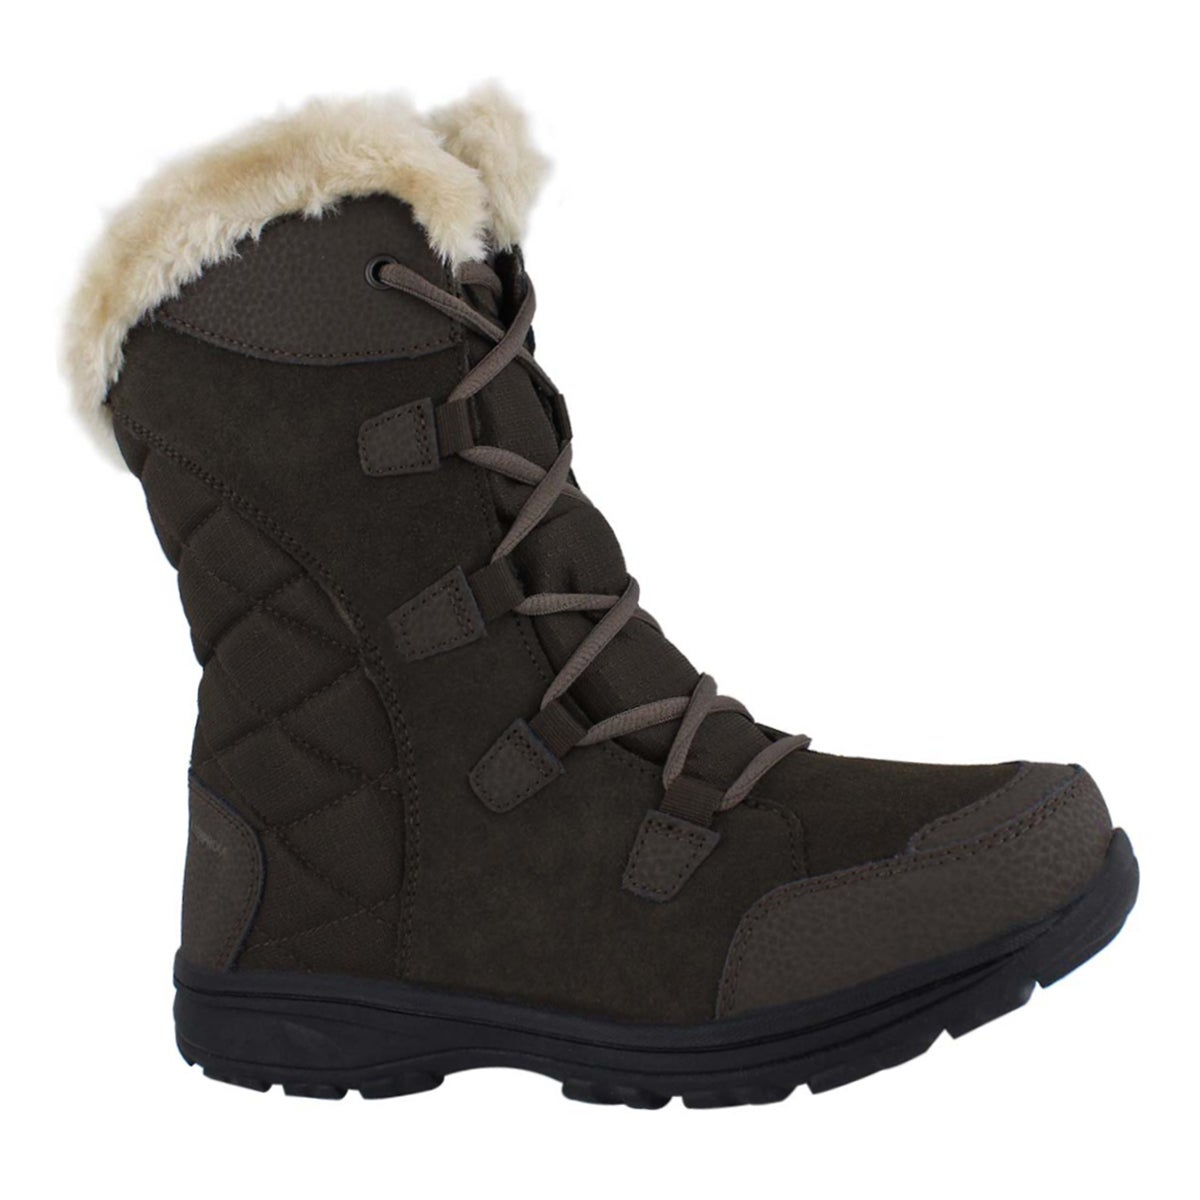 Lds Ice Maiden II cordovan wp wntr boot